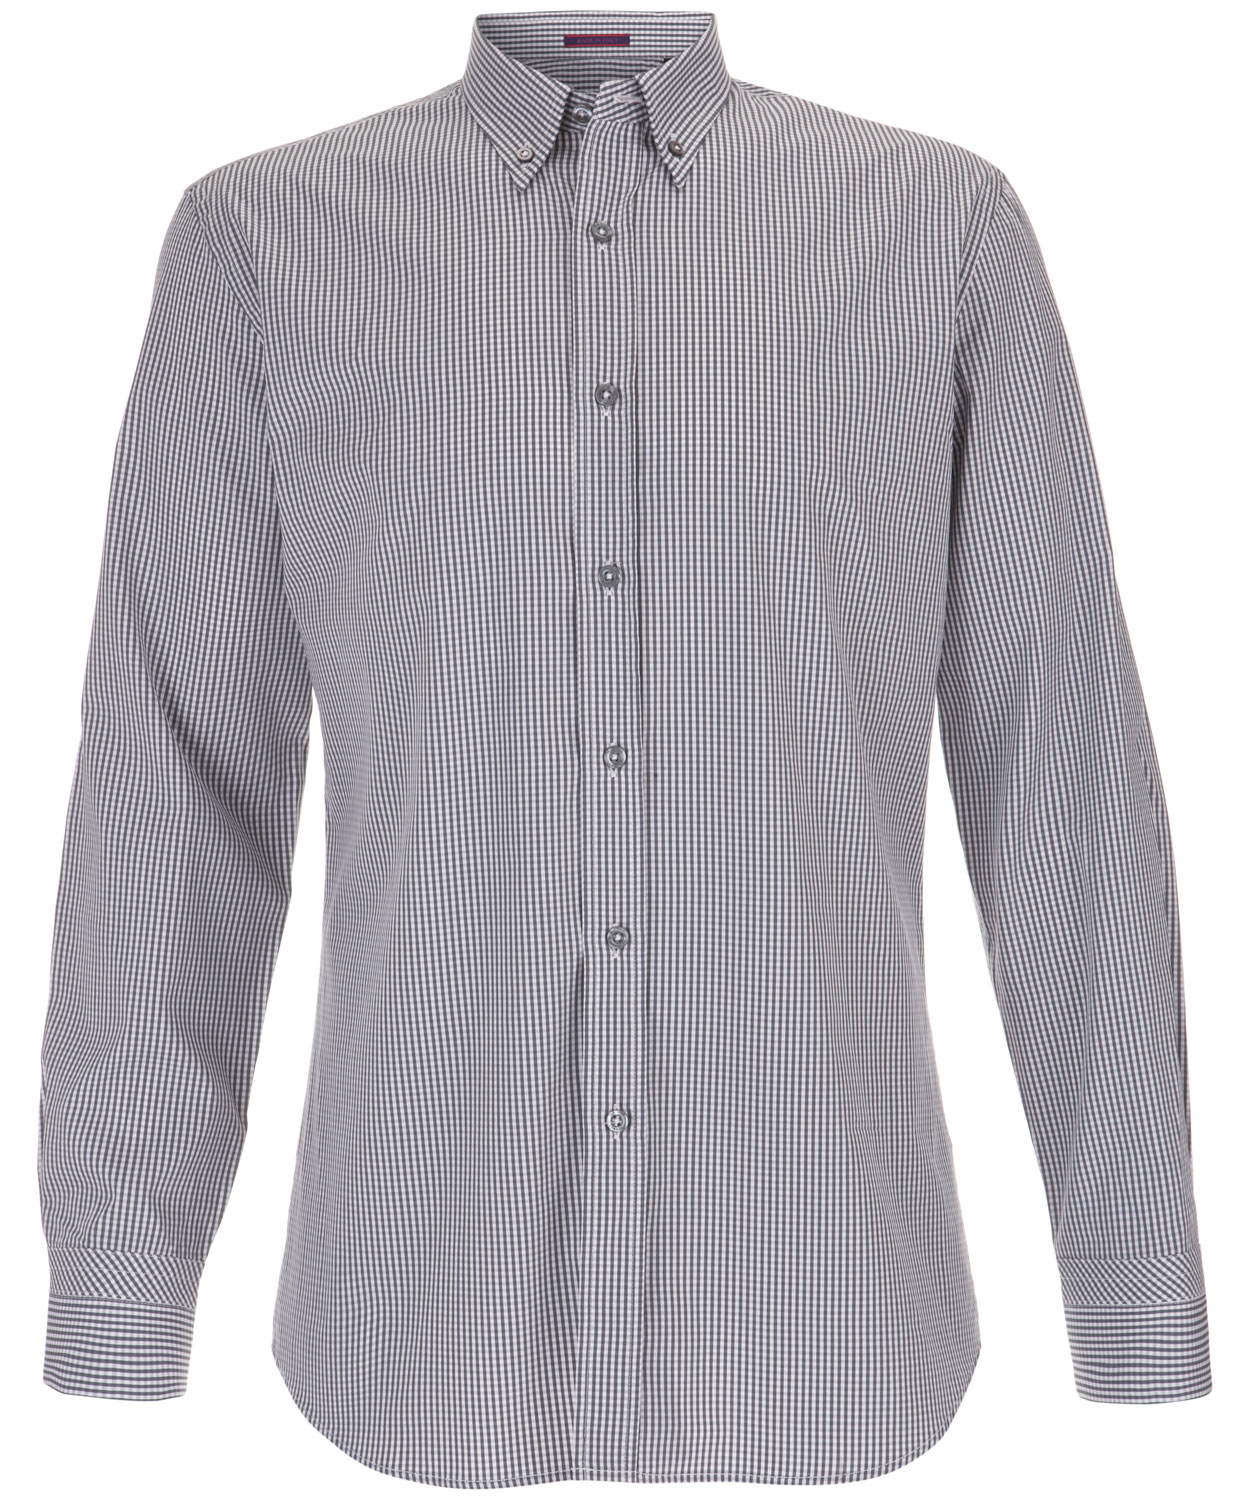 Paul smith grey gingham button down shirt in gray for men for Mens grey button down dress shirt